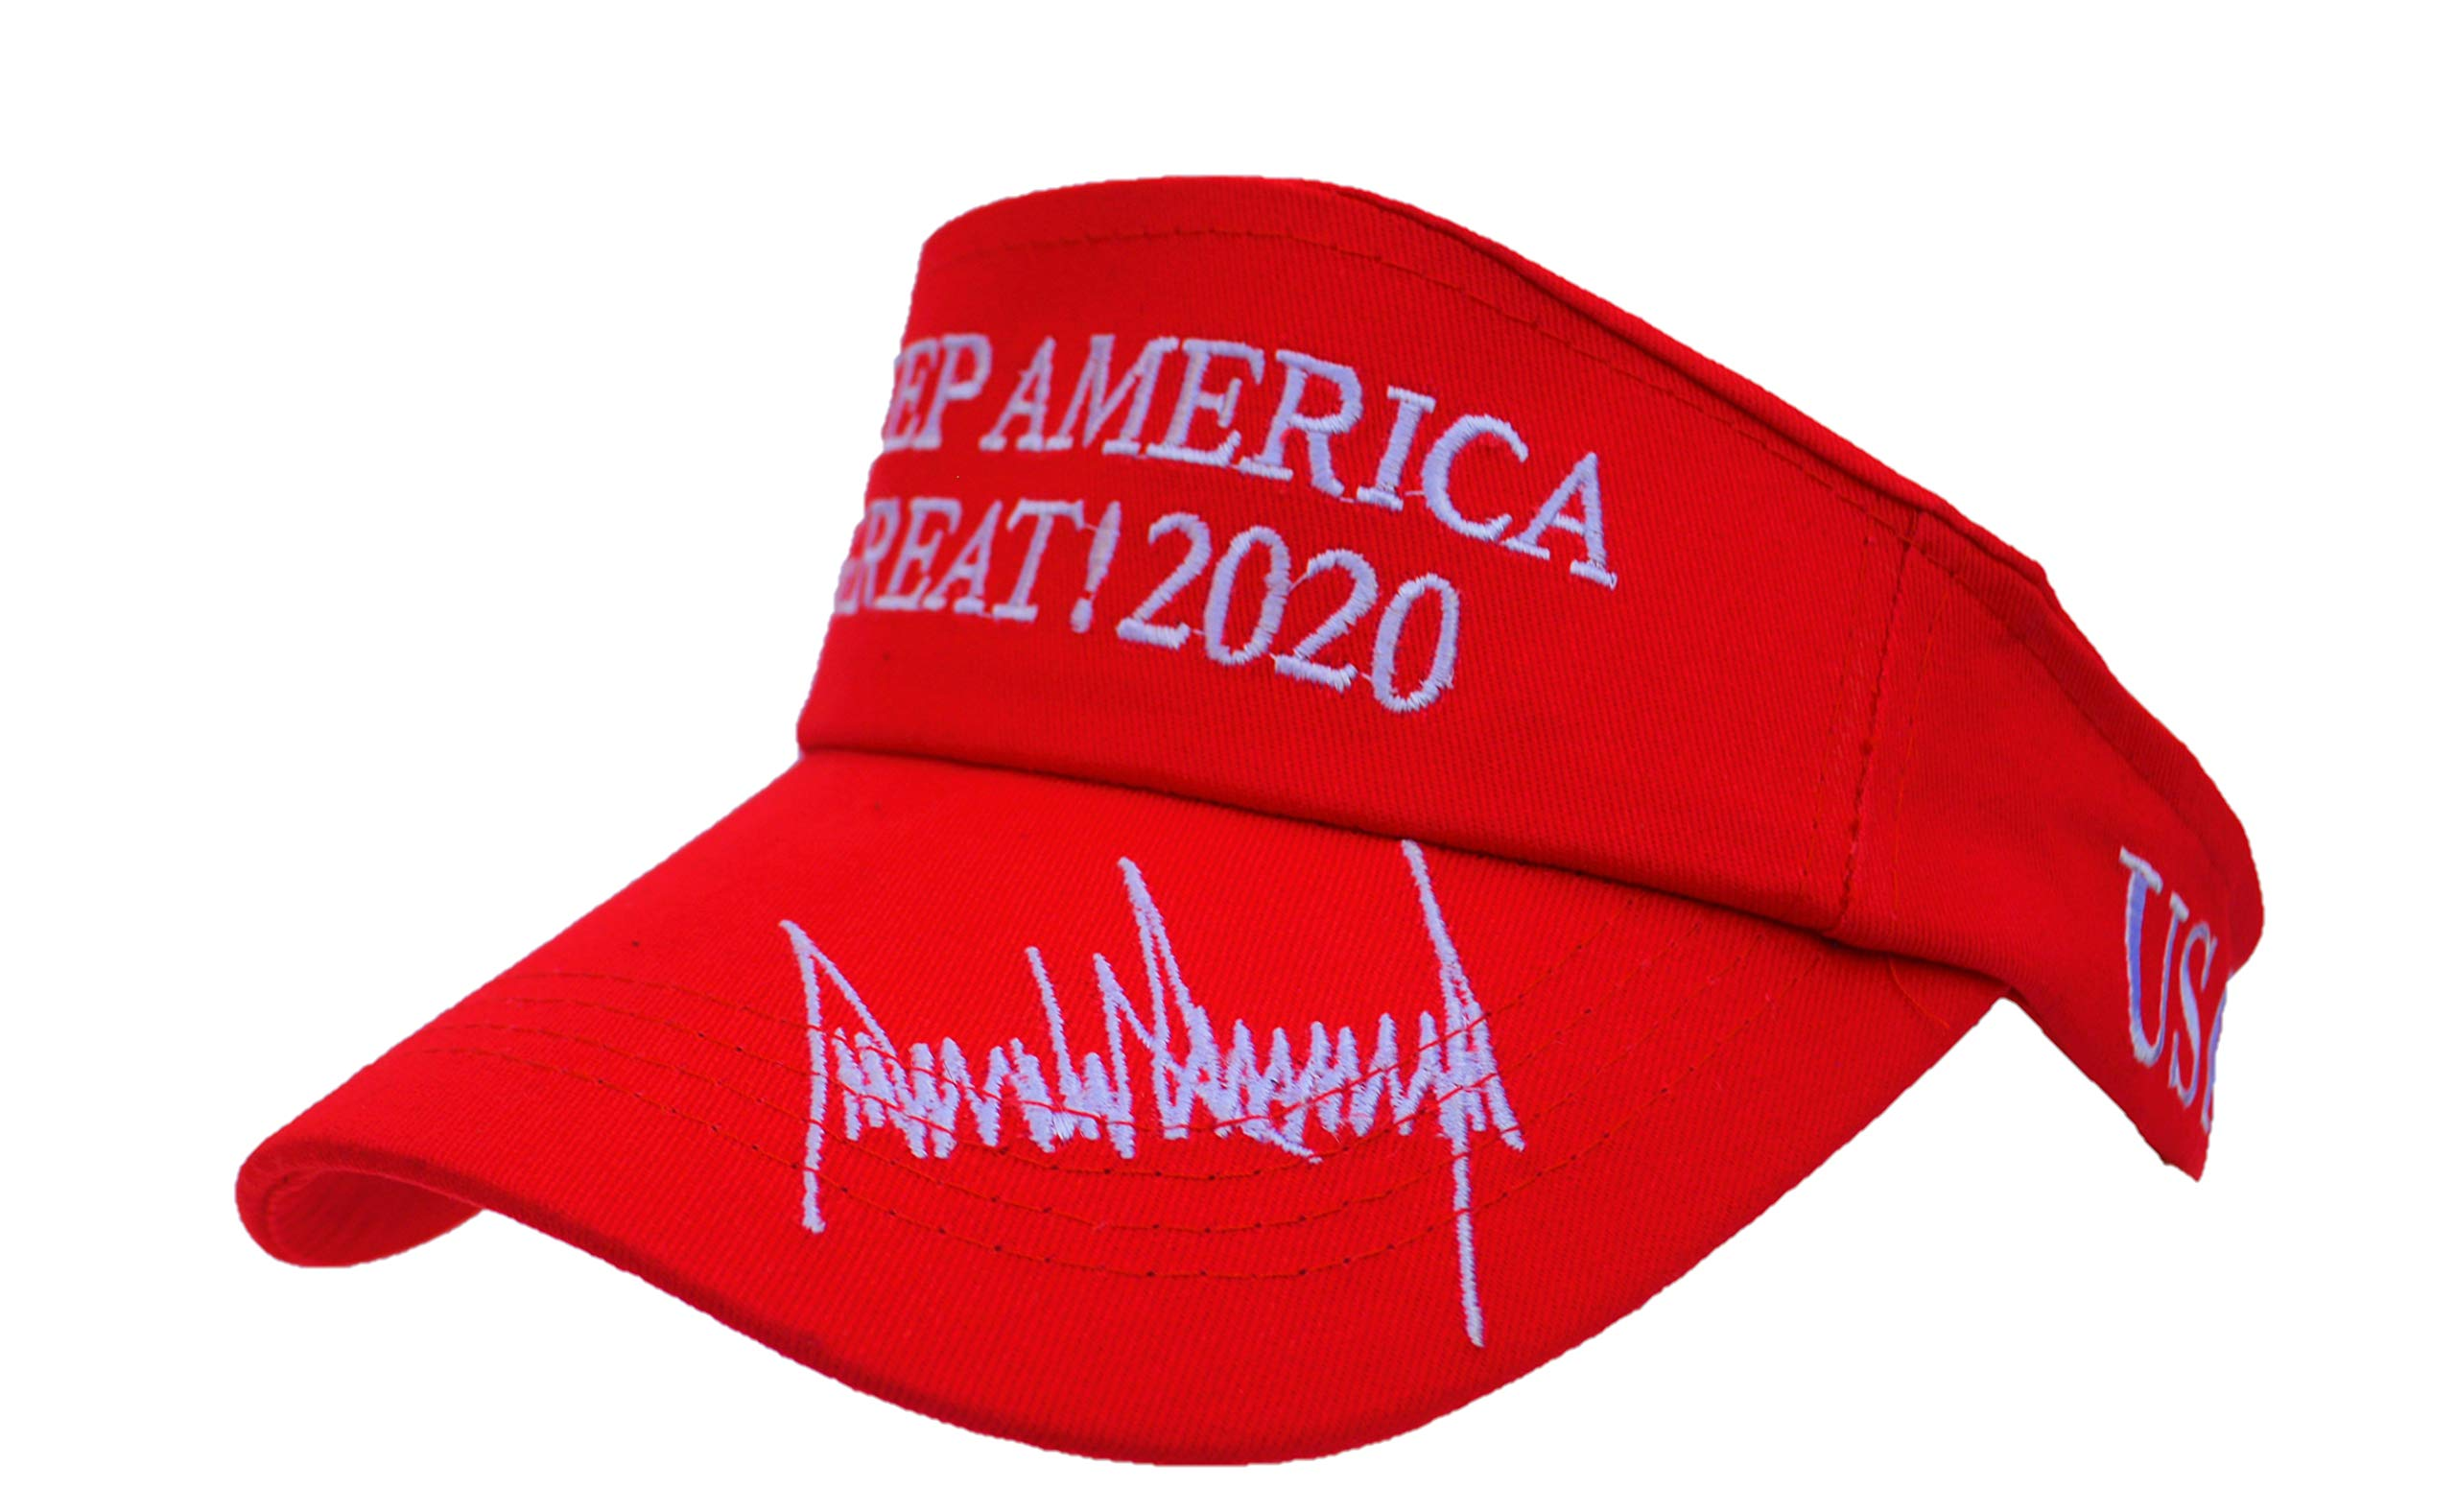 MAGA Keep America Great Donald Trump 2020 Red Premium Visor New Re-Election Slogan by CJs Trading